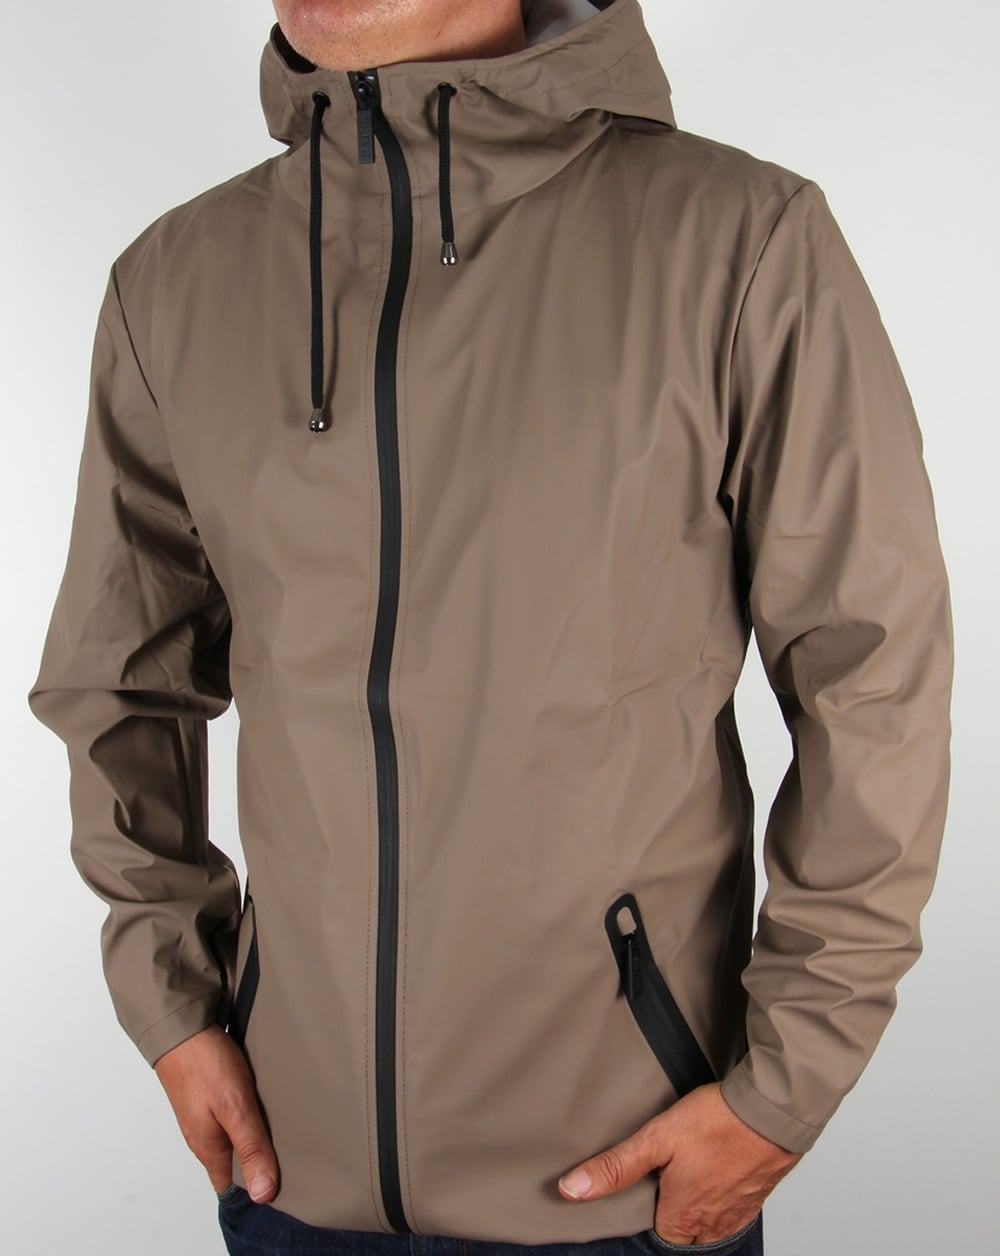 Rains Breaker Jacket Soil,rainproof,coat,waterproof,mens